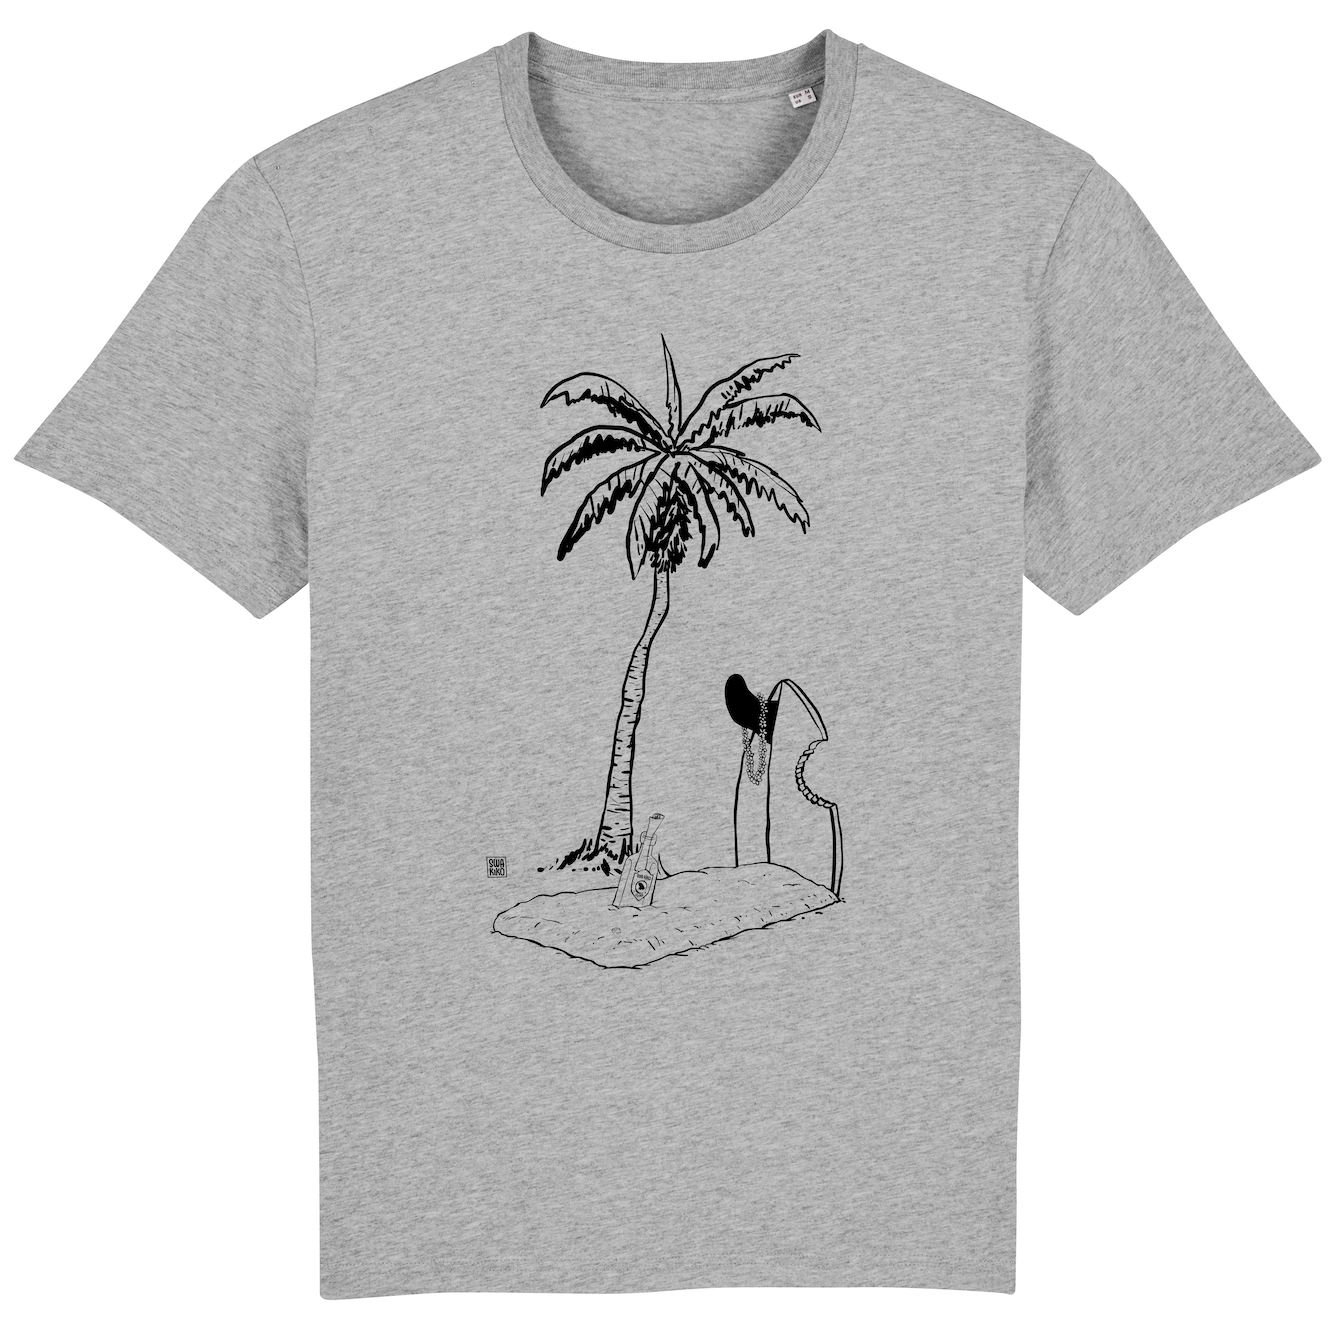 Surf t-shirt men grey, Grave with Palmtree